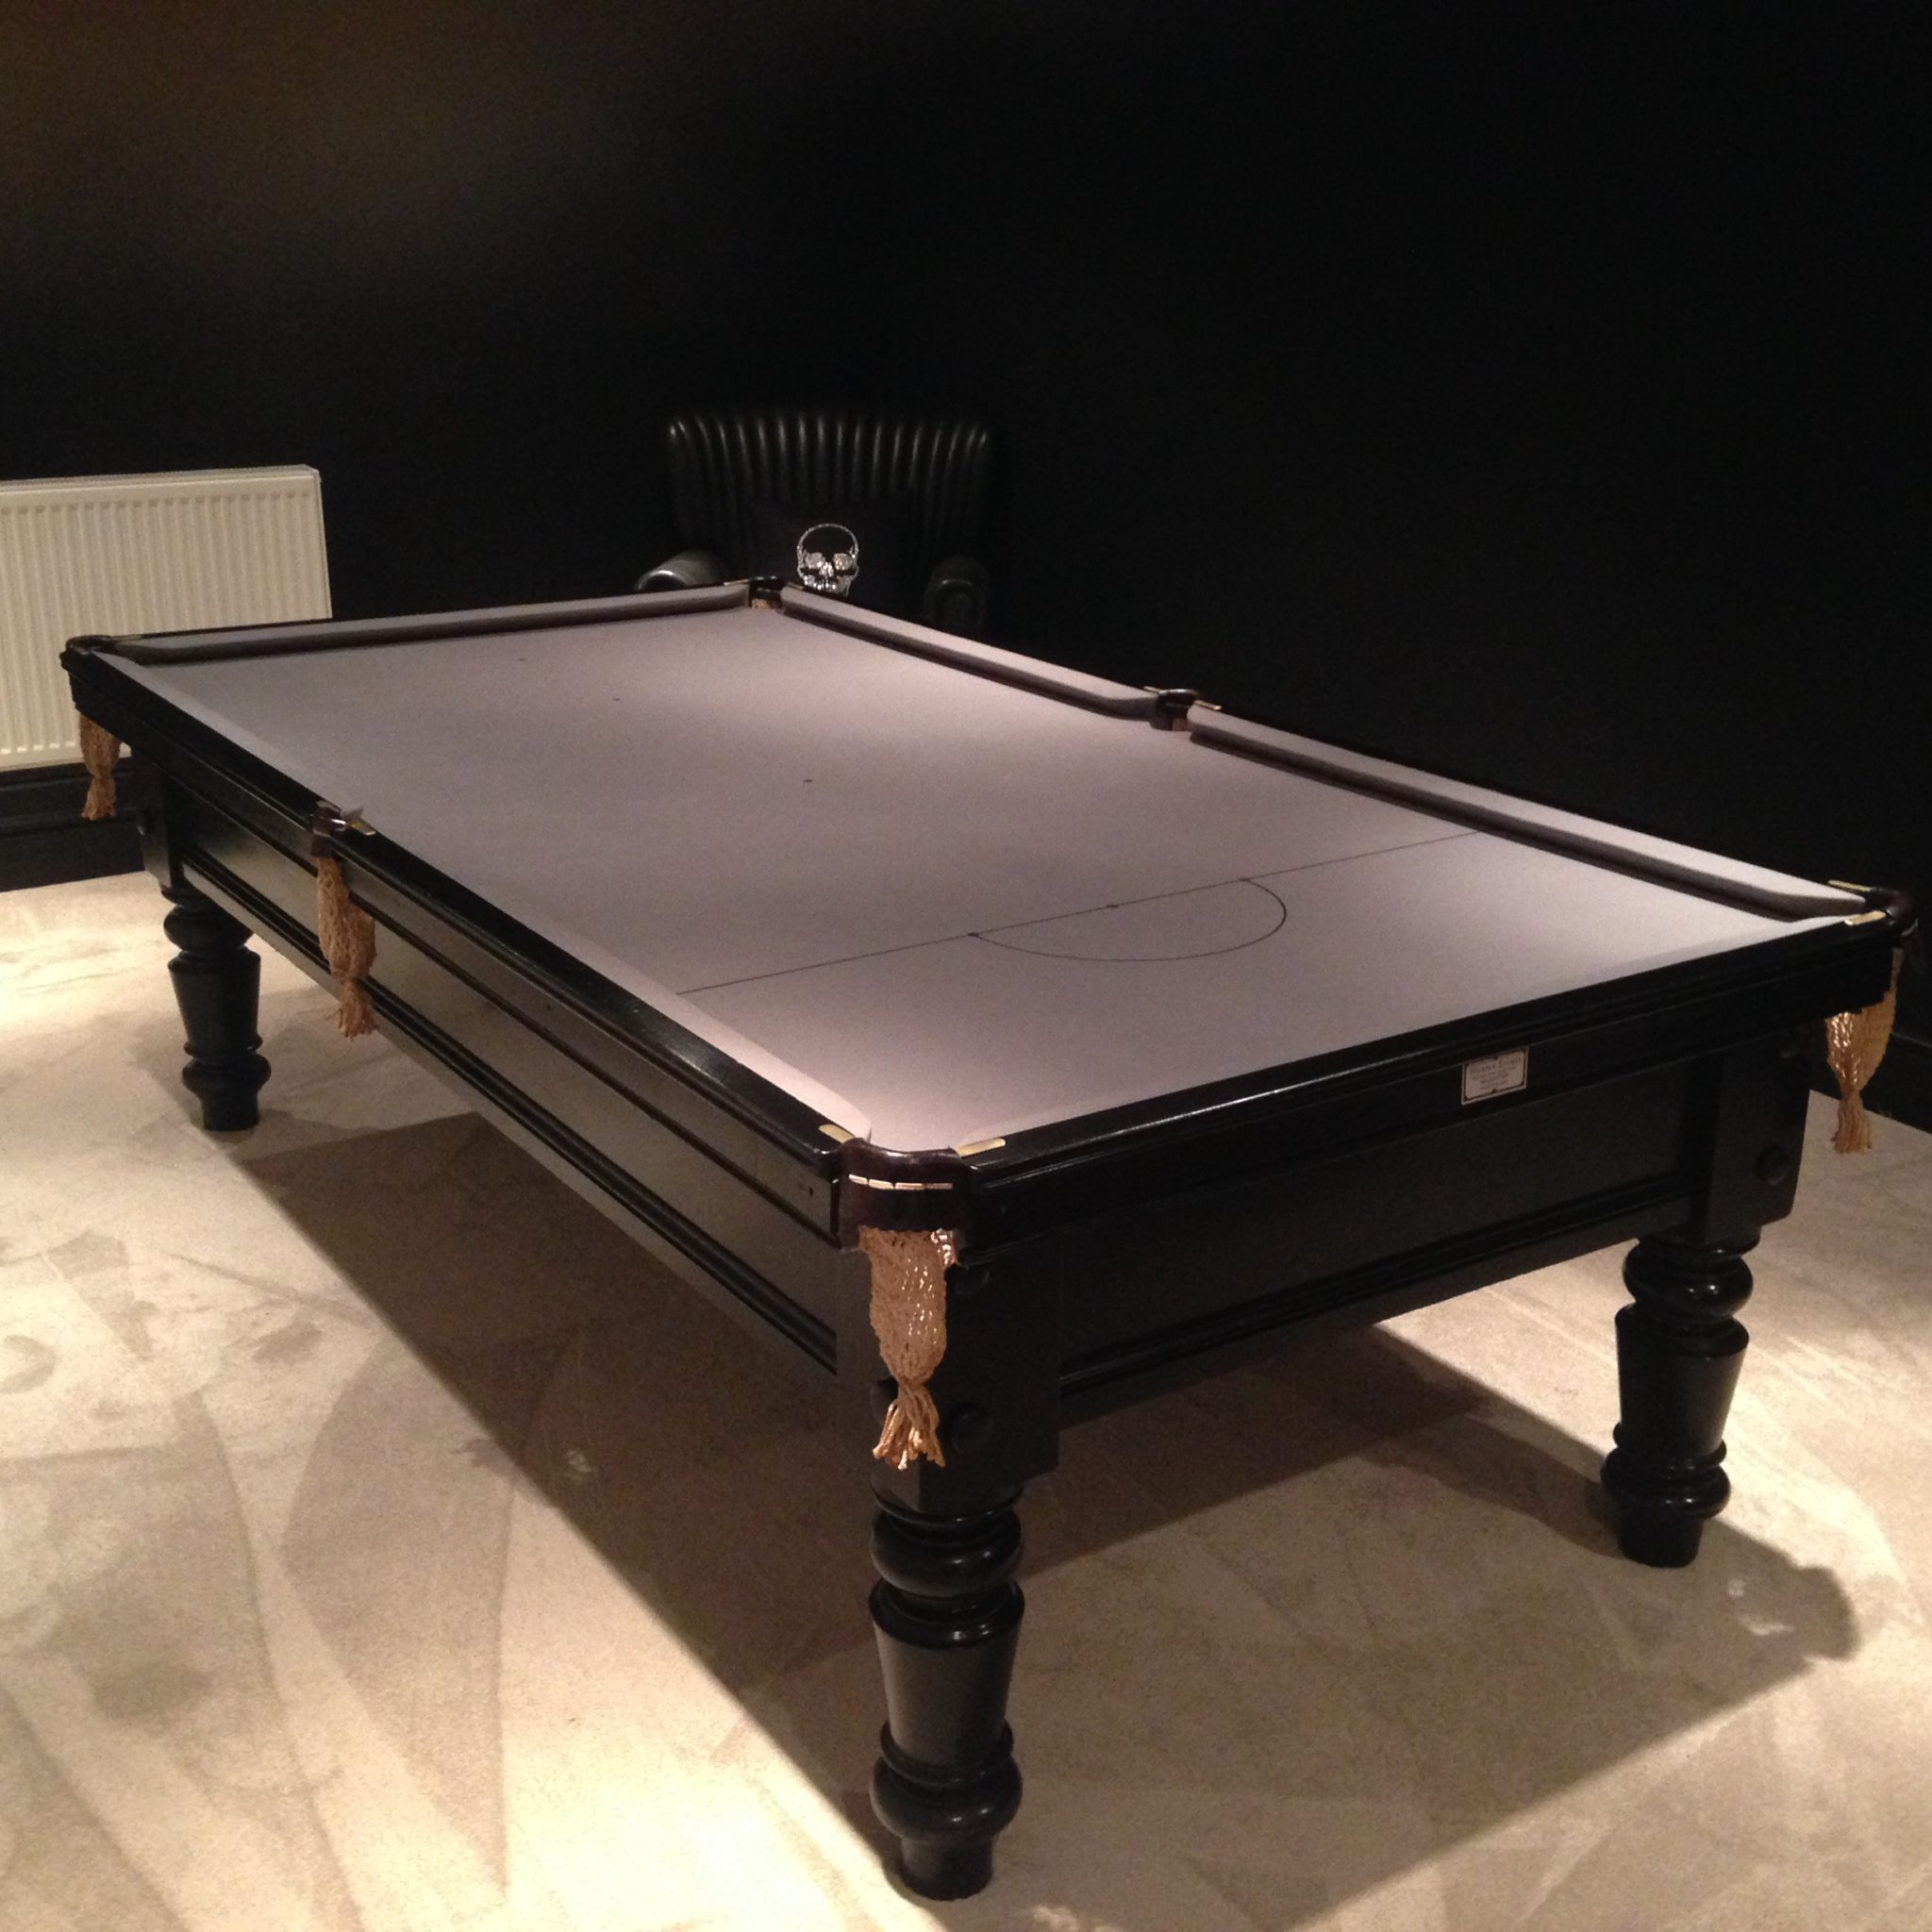 prod architetto tables cavicchi pool classic table cheap product di biliardi paris dining giancarlo convertible